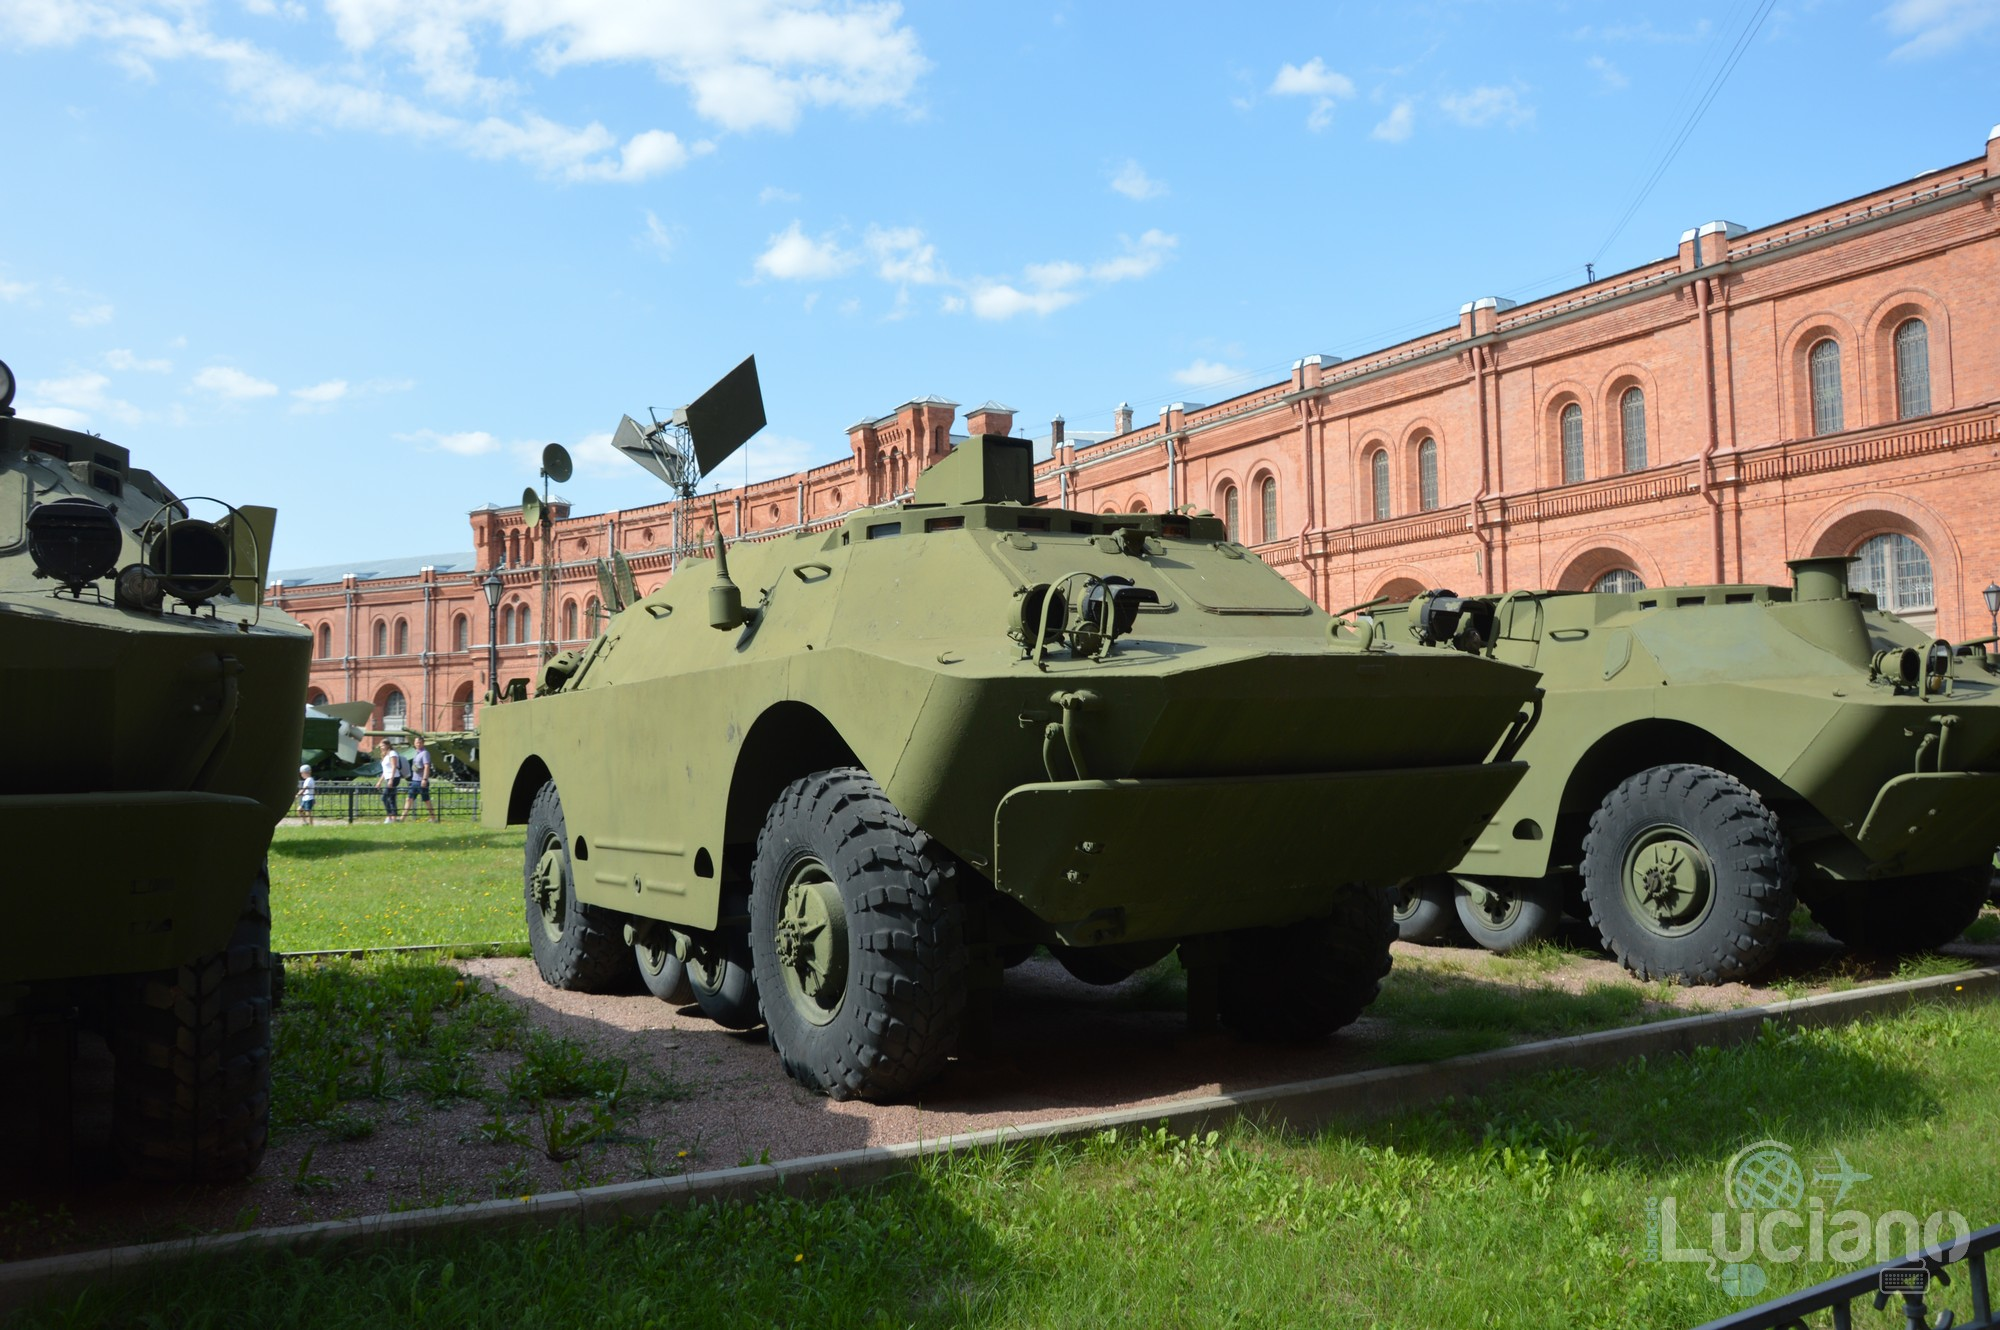 Military-Historical-Museum-of-Artillery-Engineer-and-Signal-Corps-St-Petersburg-Russia-Luciano-Blancato- (38)